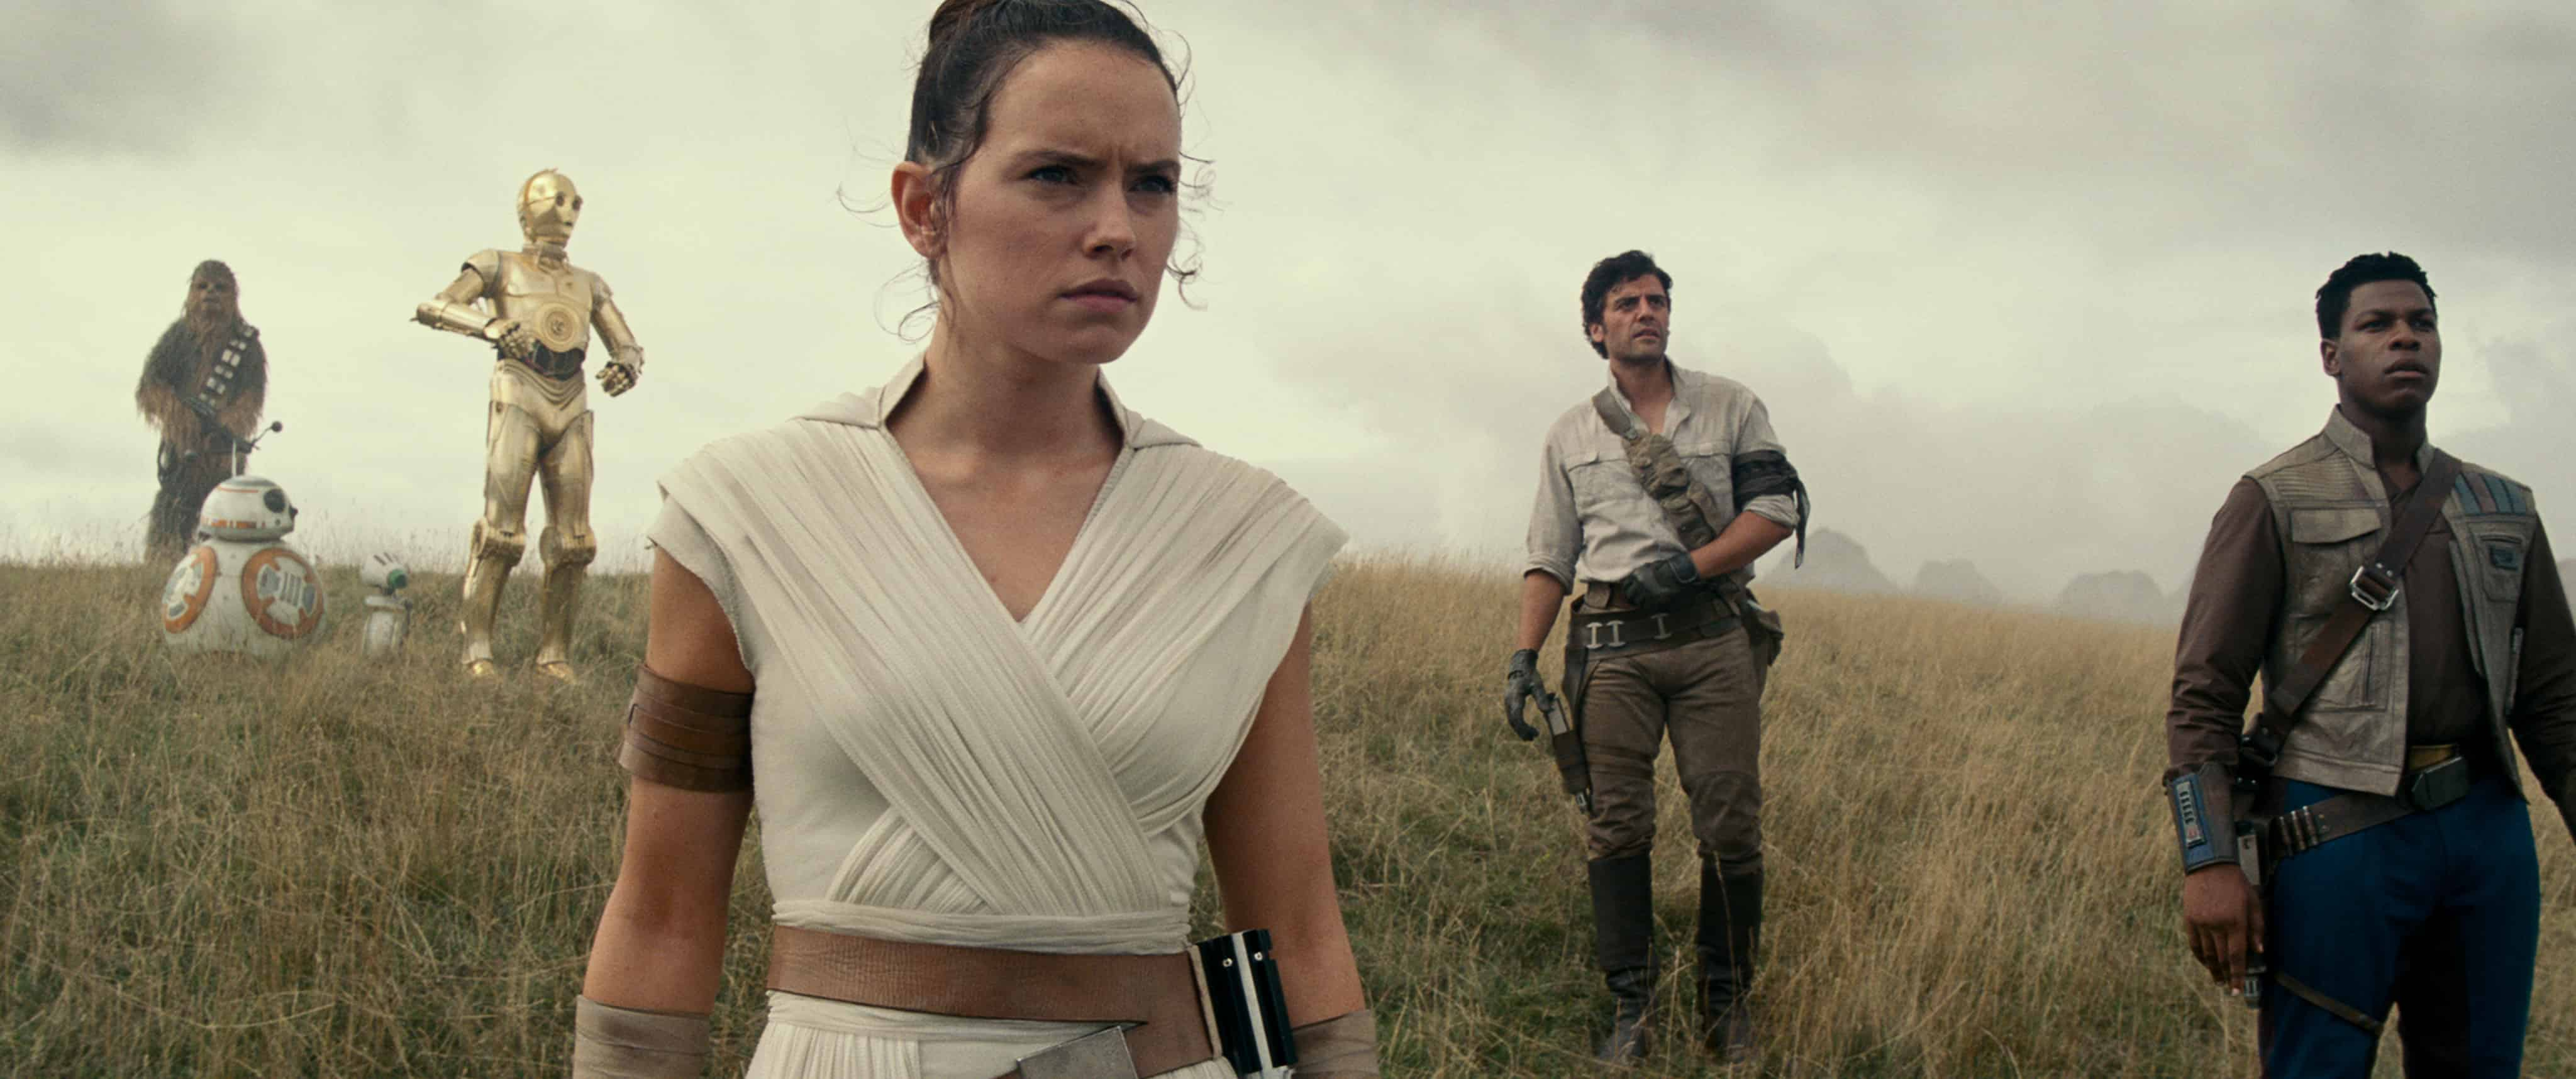 10 new things about Star Wars Episode 9